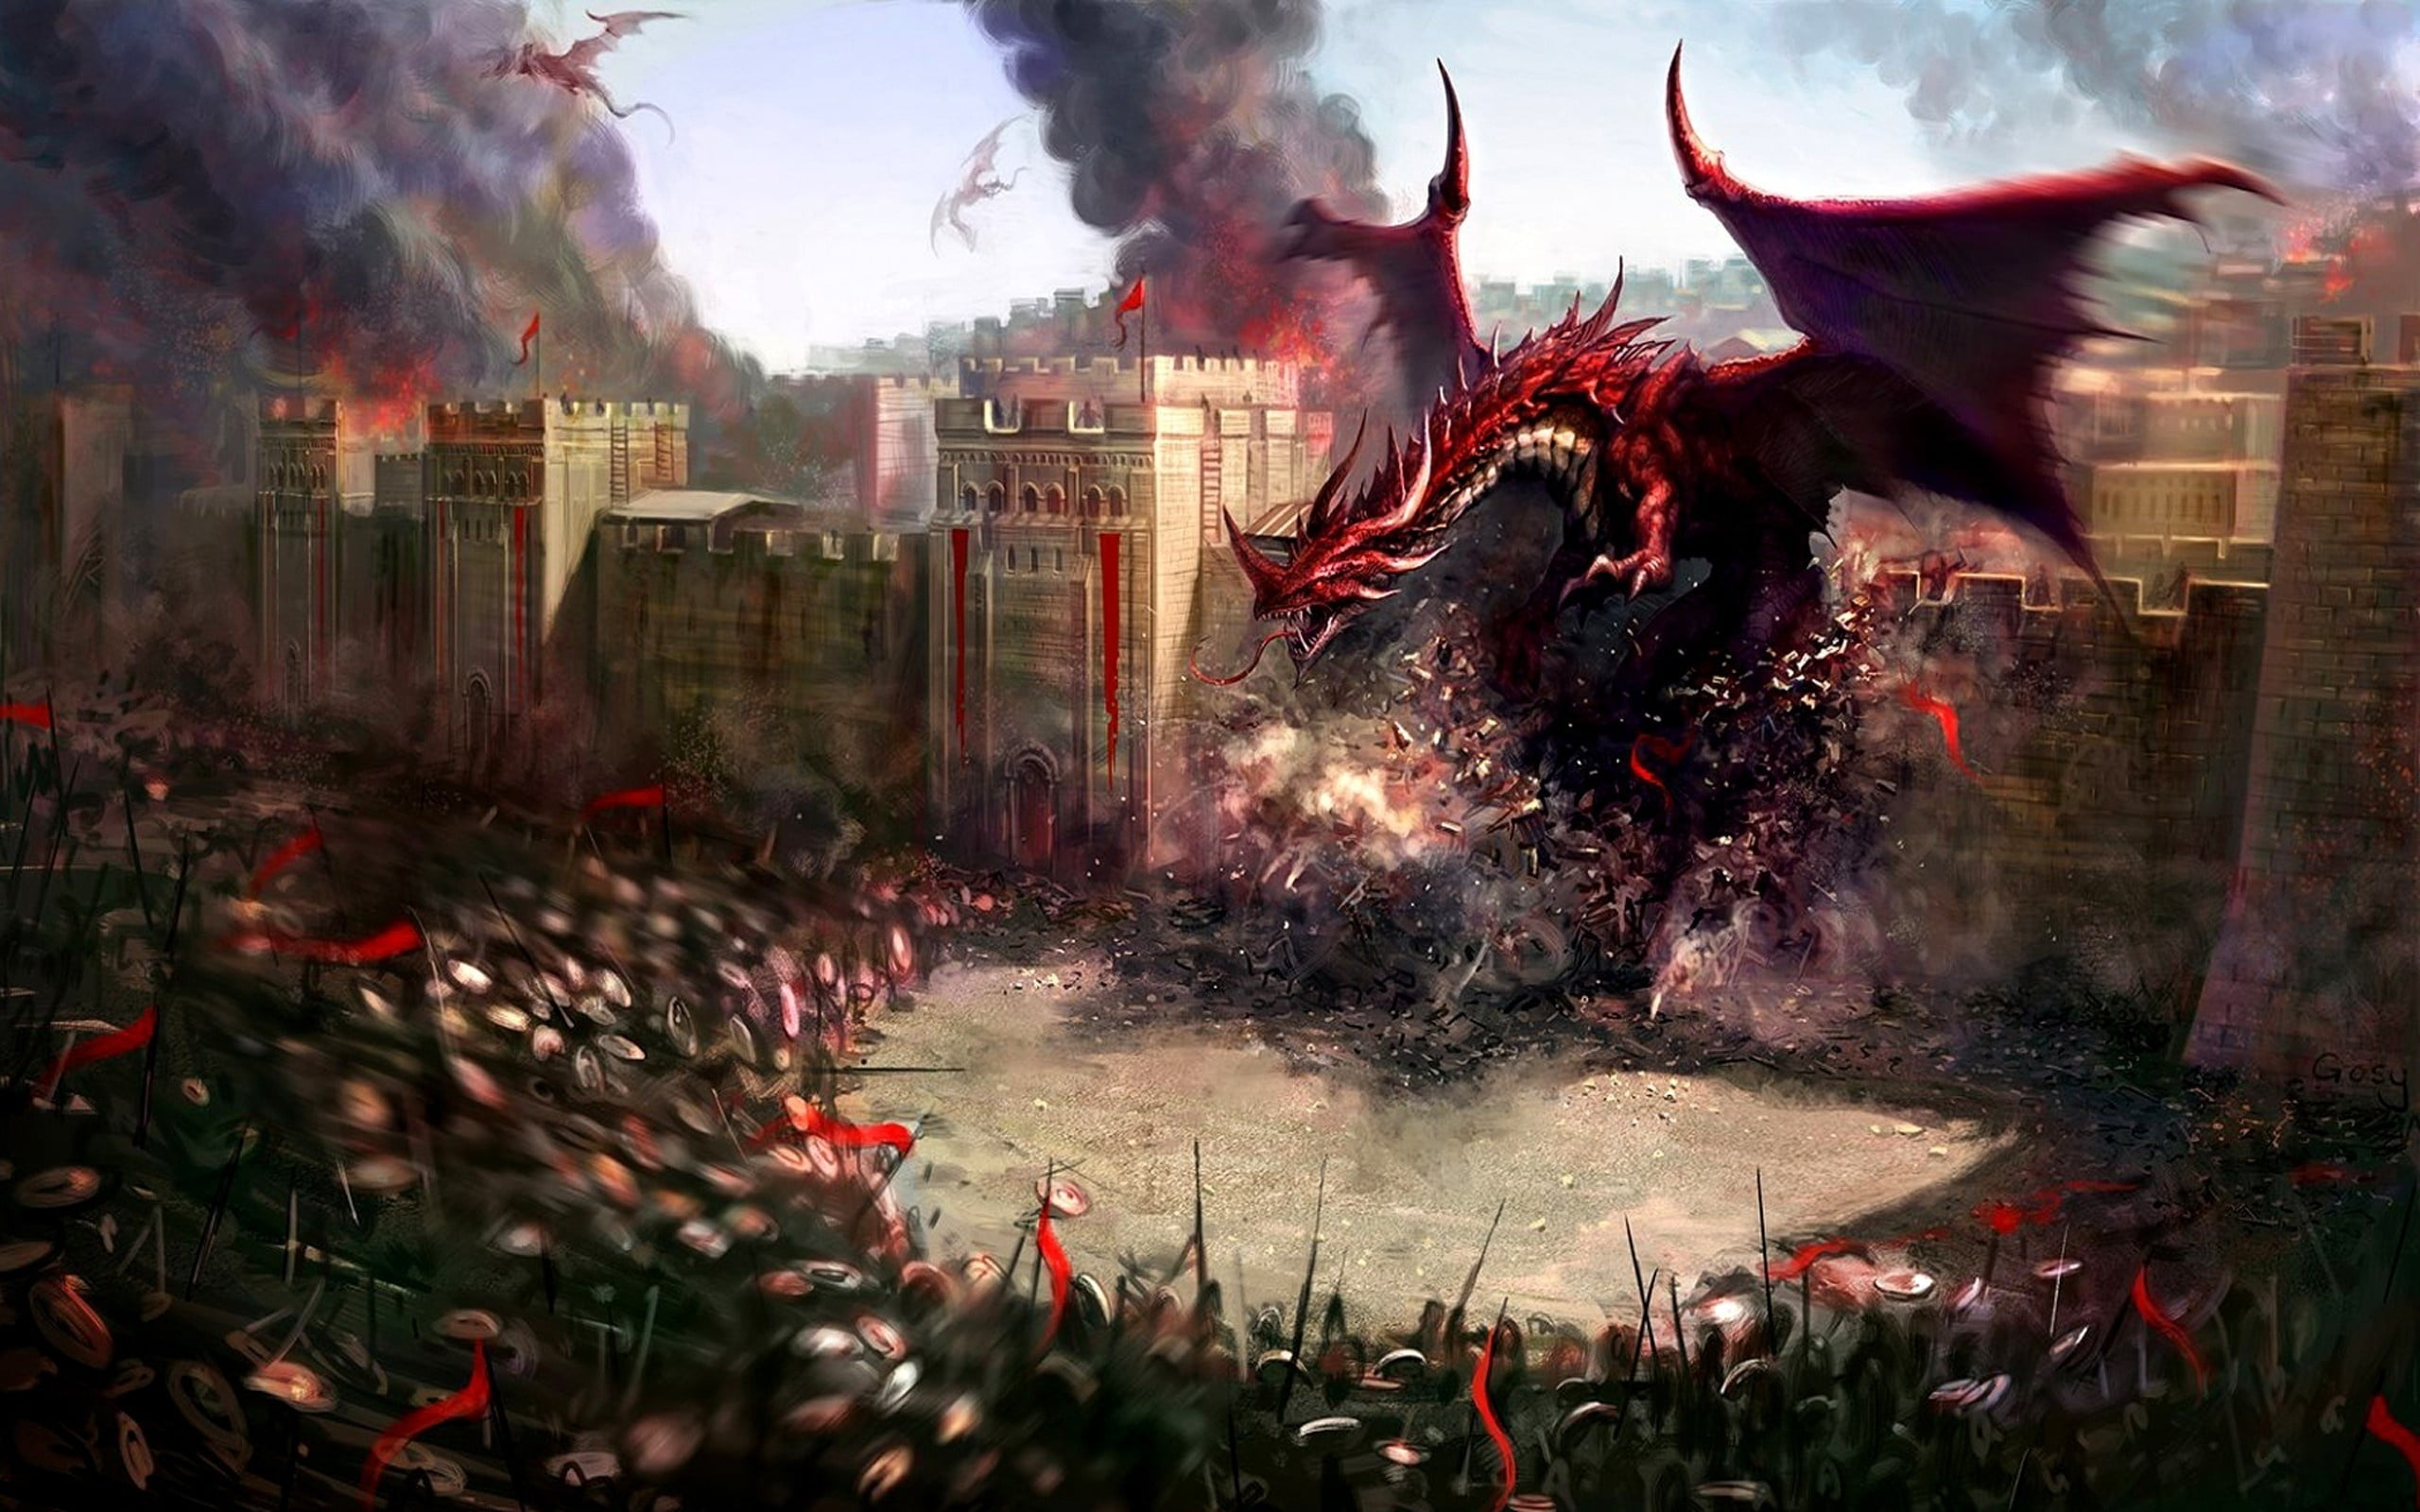 Red Dragon Destroyed The Castle Wall In Front Of Soldier D D